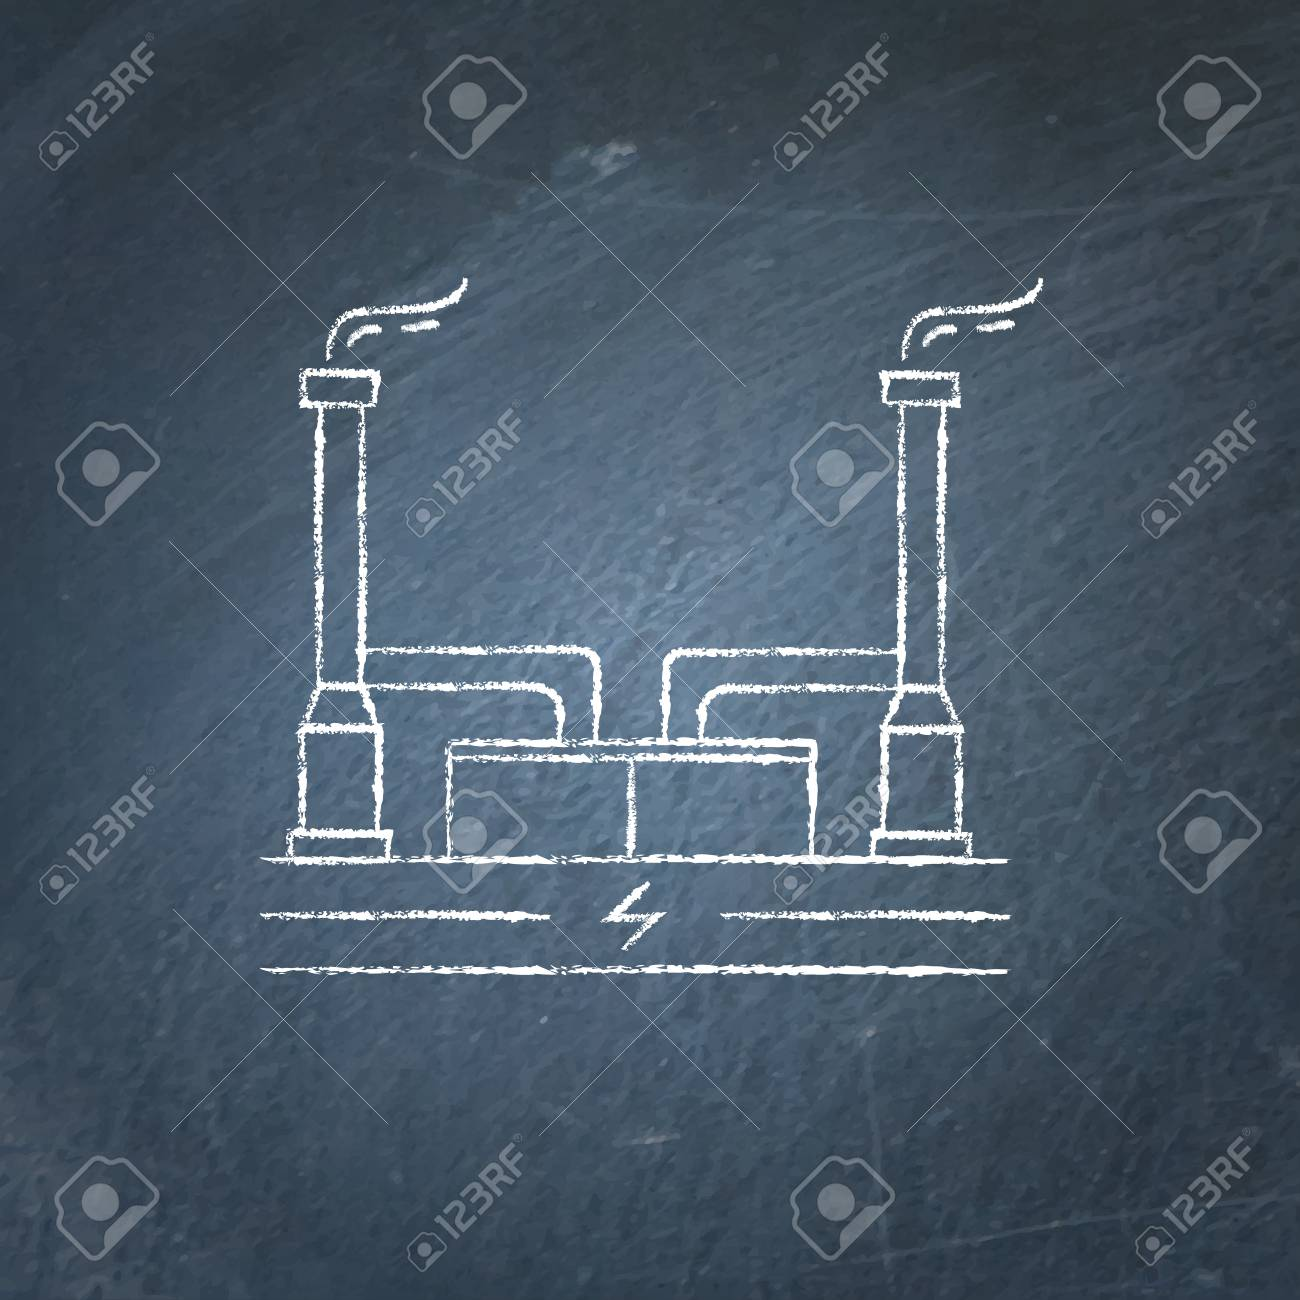 power plant schematic symbols outline geothermal power plant icon sketch on chalkboard  outline geothermal power plant icon